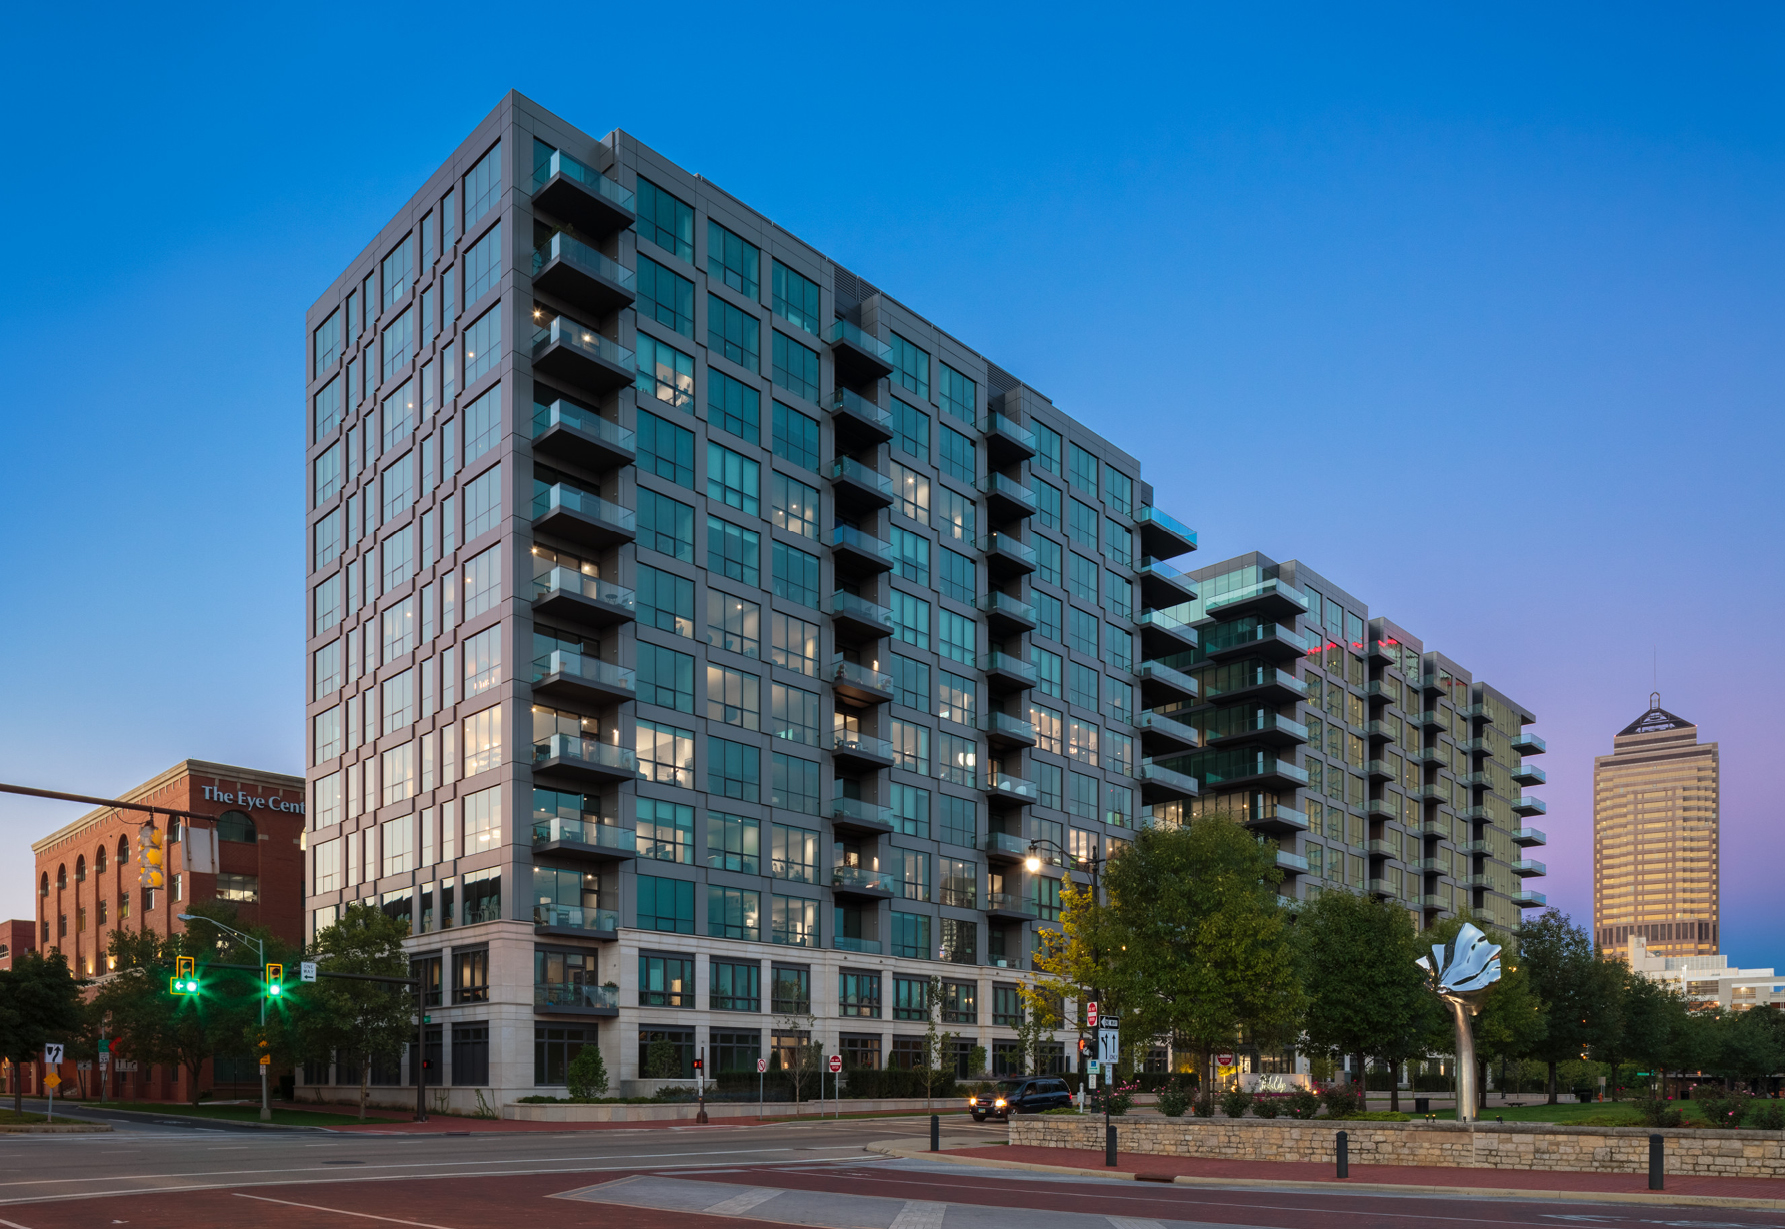 Nationwide Realty Investors Parks Edge Condominiums and Parking Garage West Building